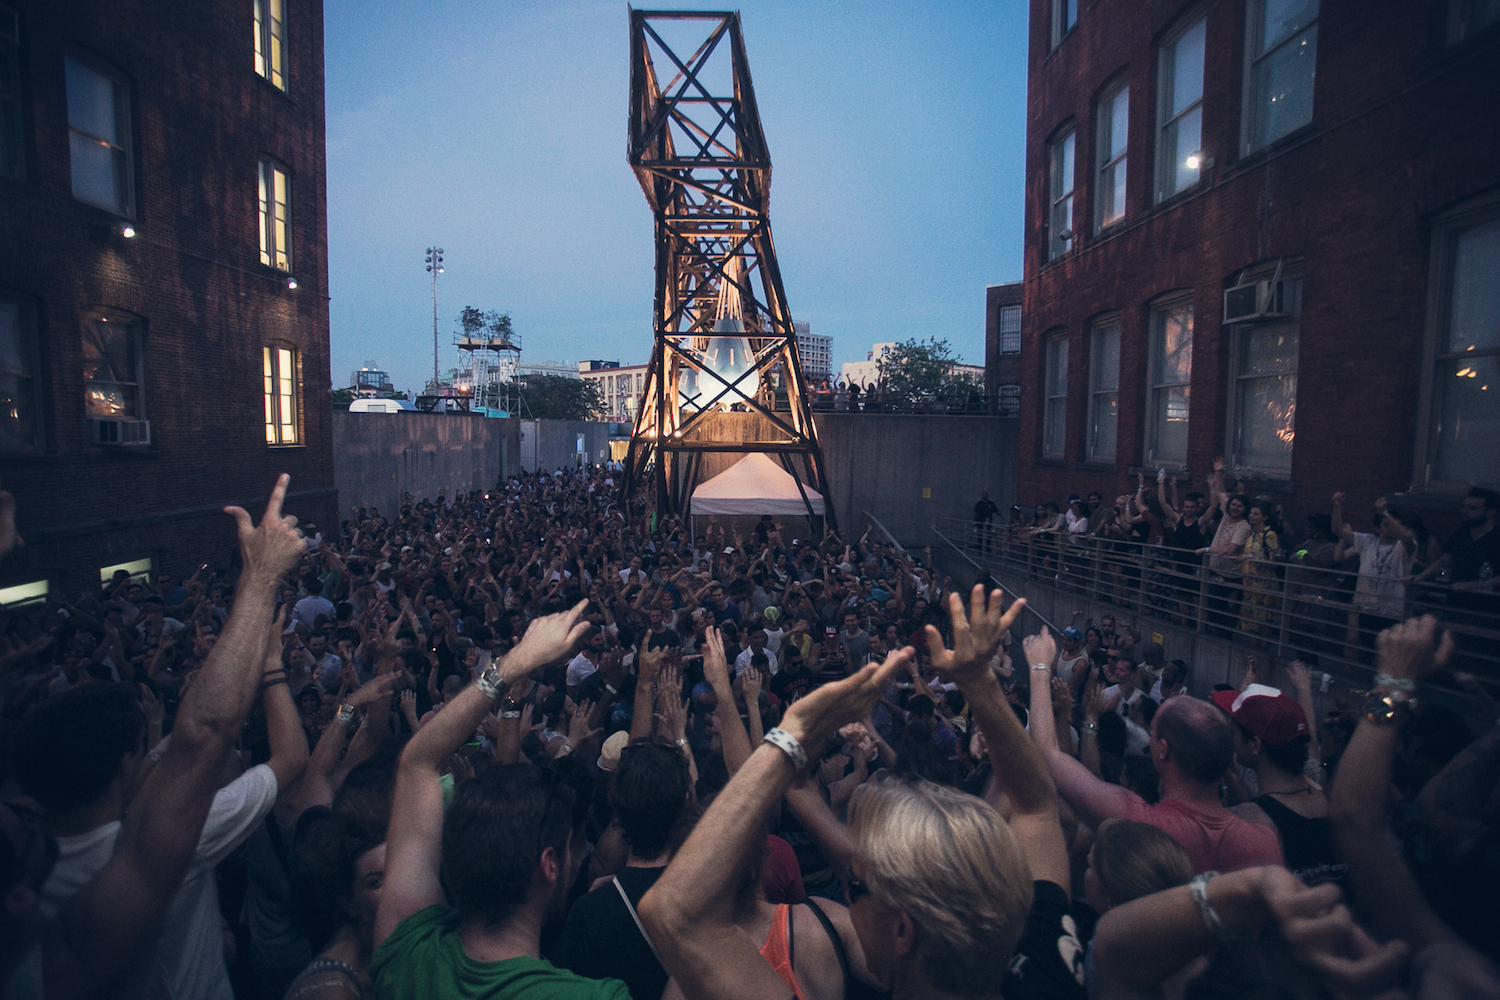 MoMA PS1's Warm Up 2013